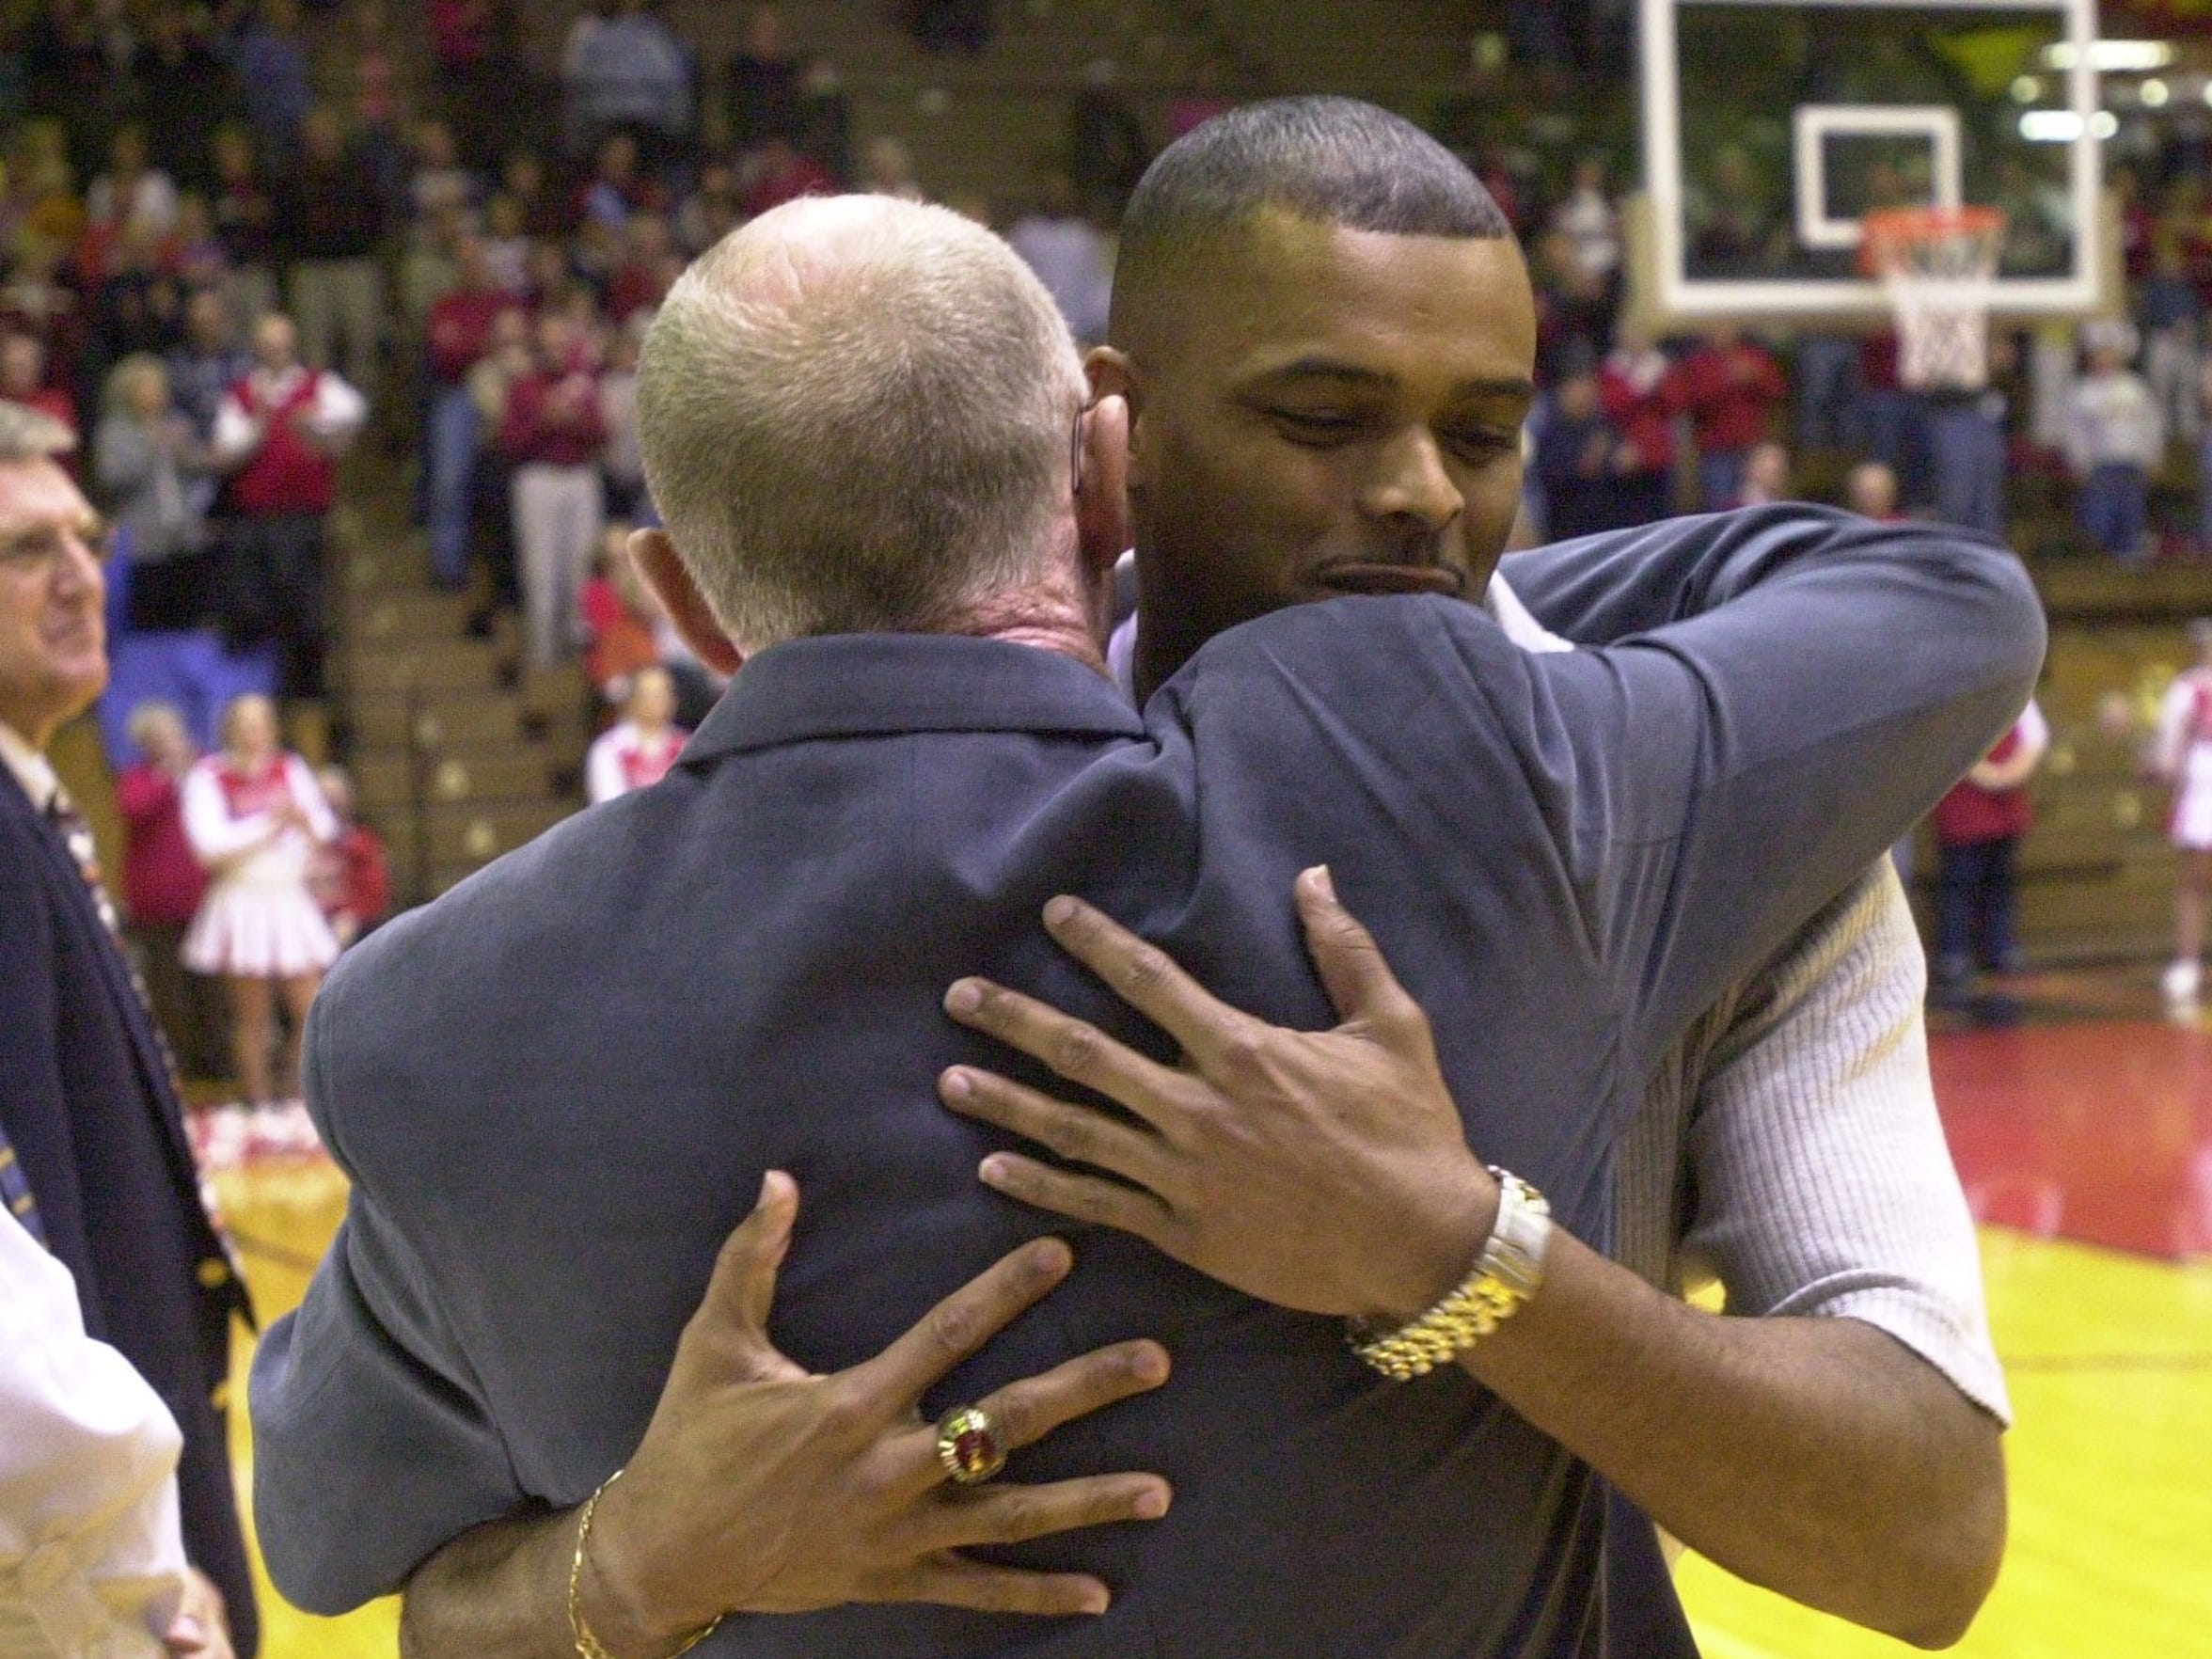 Former Richmond High School basketball player Billy Wright hugs coach George Griffith during introductions at the Tiernan Center in Richmond Saturday night, Jan. 26, 2002.